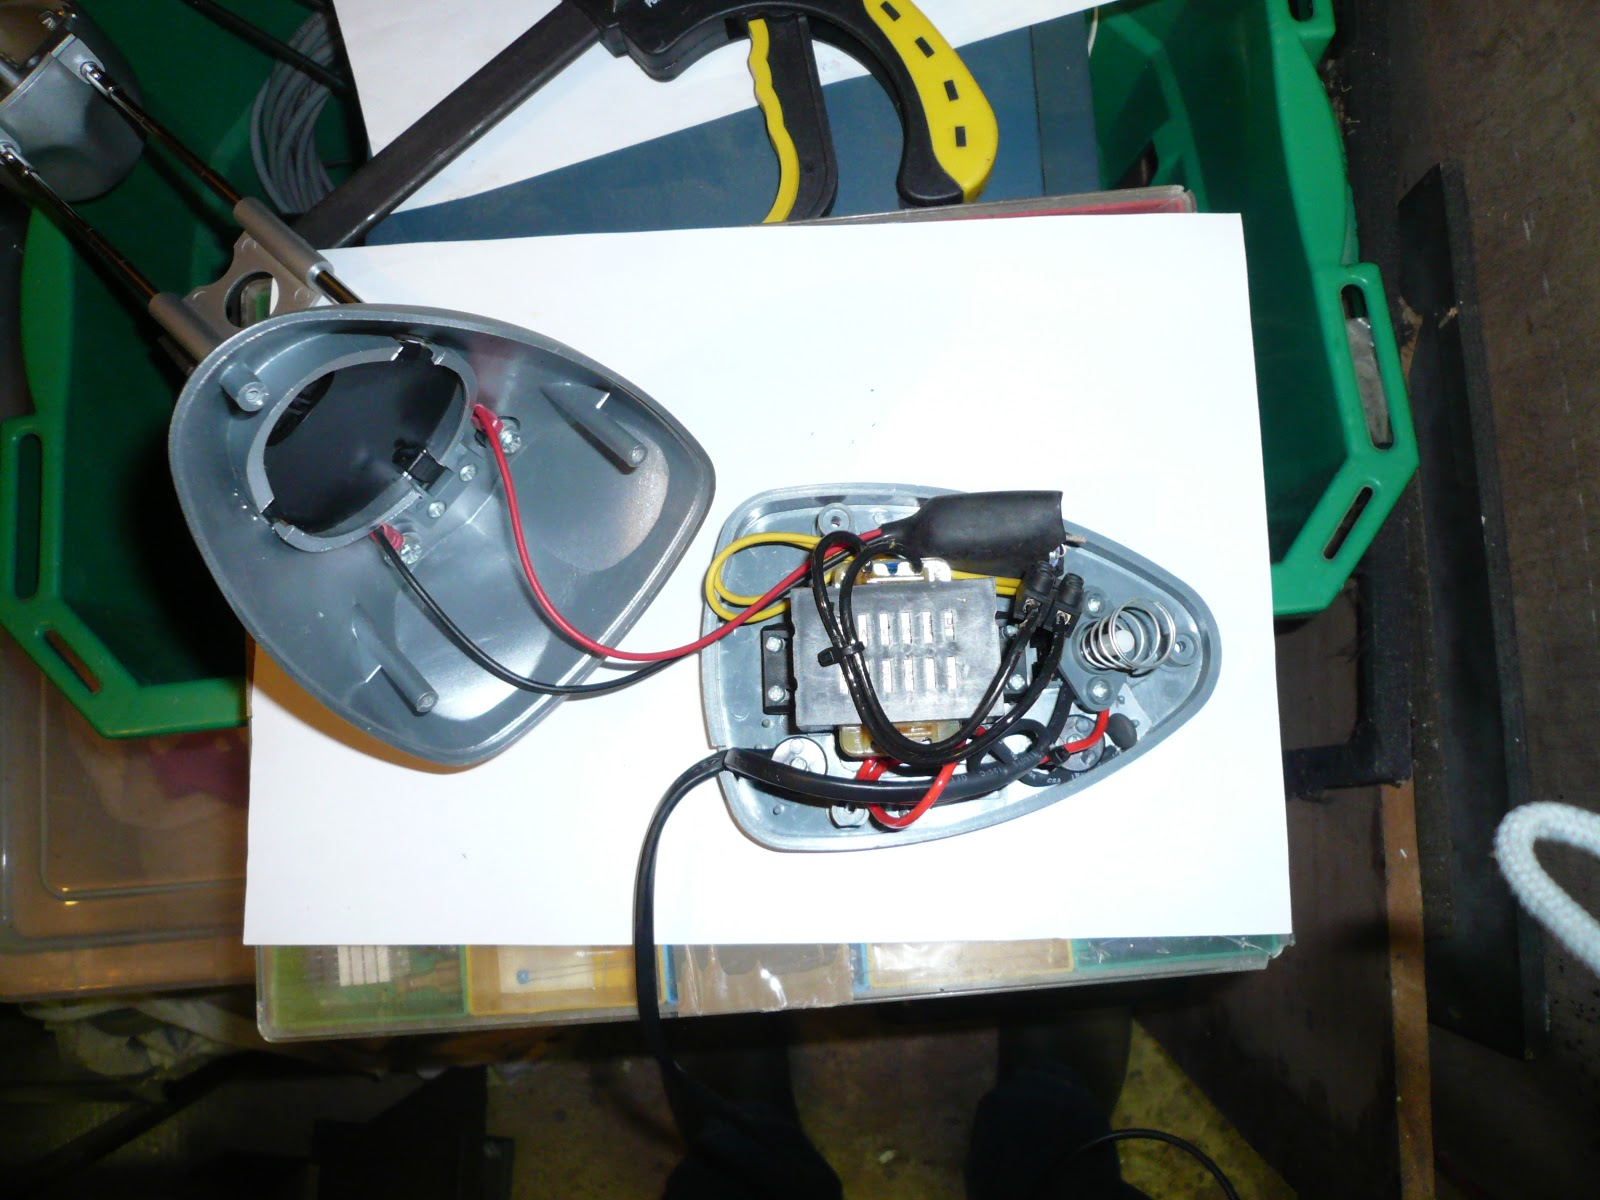 Making The Net Work Successfully Replacing A Halogen Bulb With Flicker Circuit Shown Below These Smd Leds Will Not Flash Or Finally I Tucked Rectifier And Leads Into Base Re Assembled Sure No Wires Were Crimped Exposed After Fully Assembling